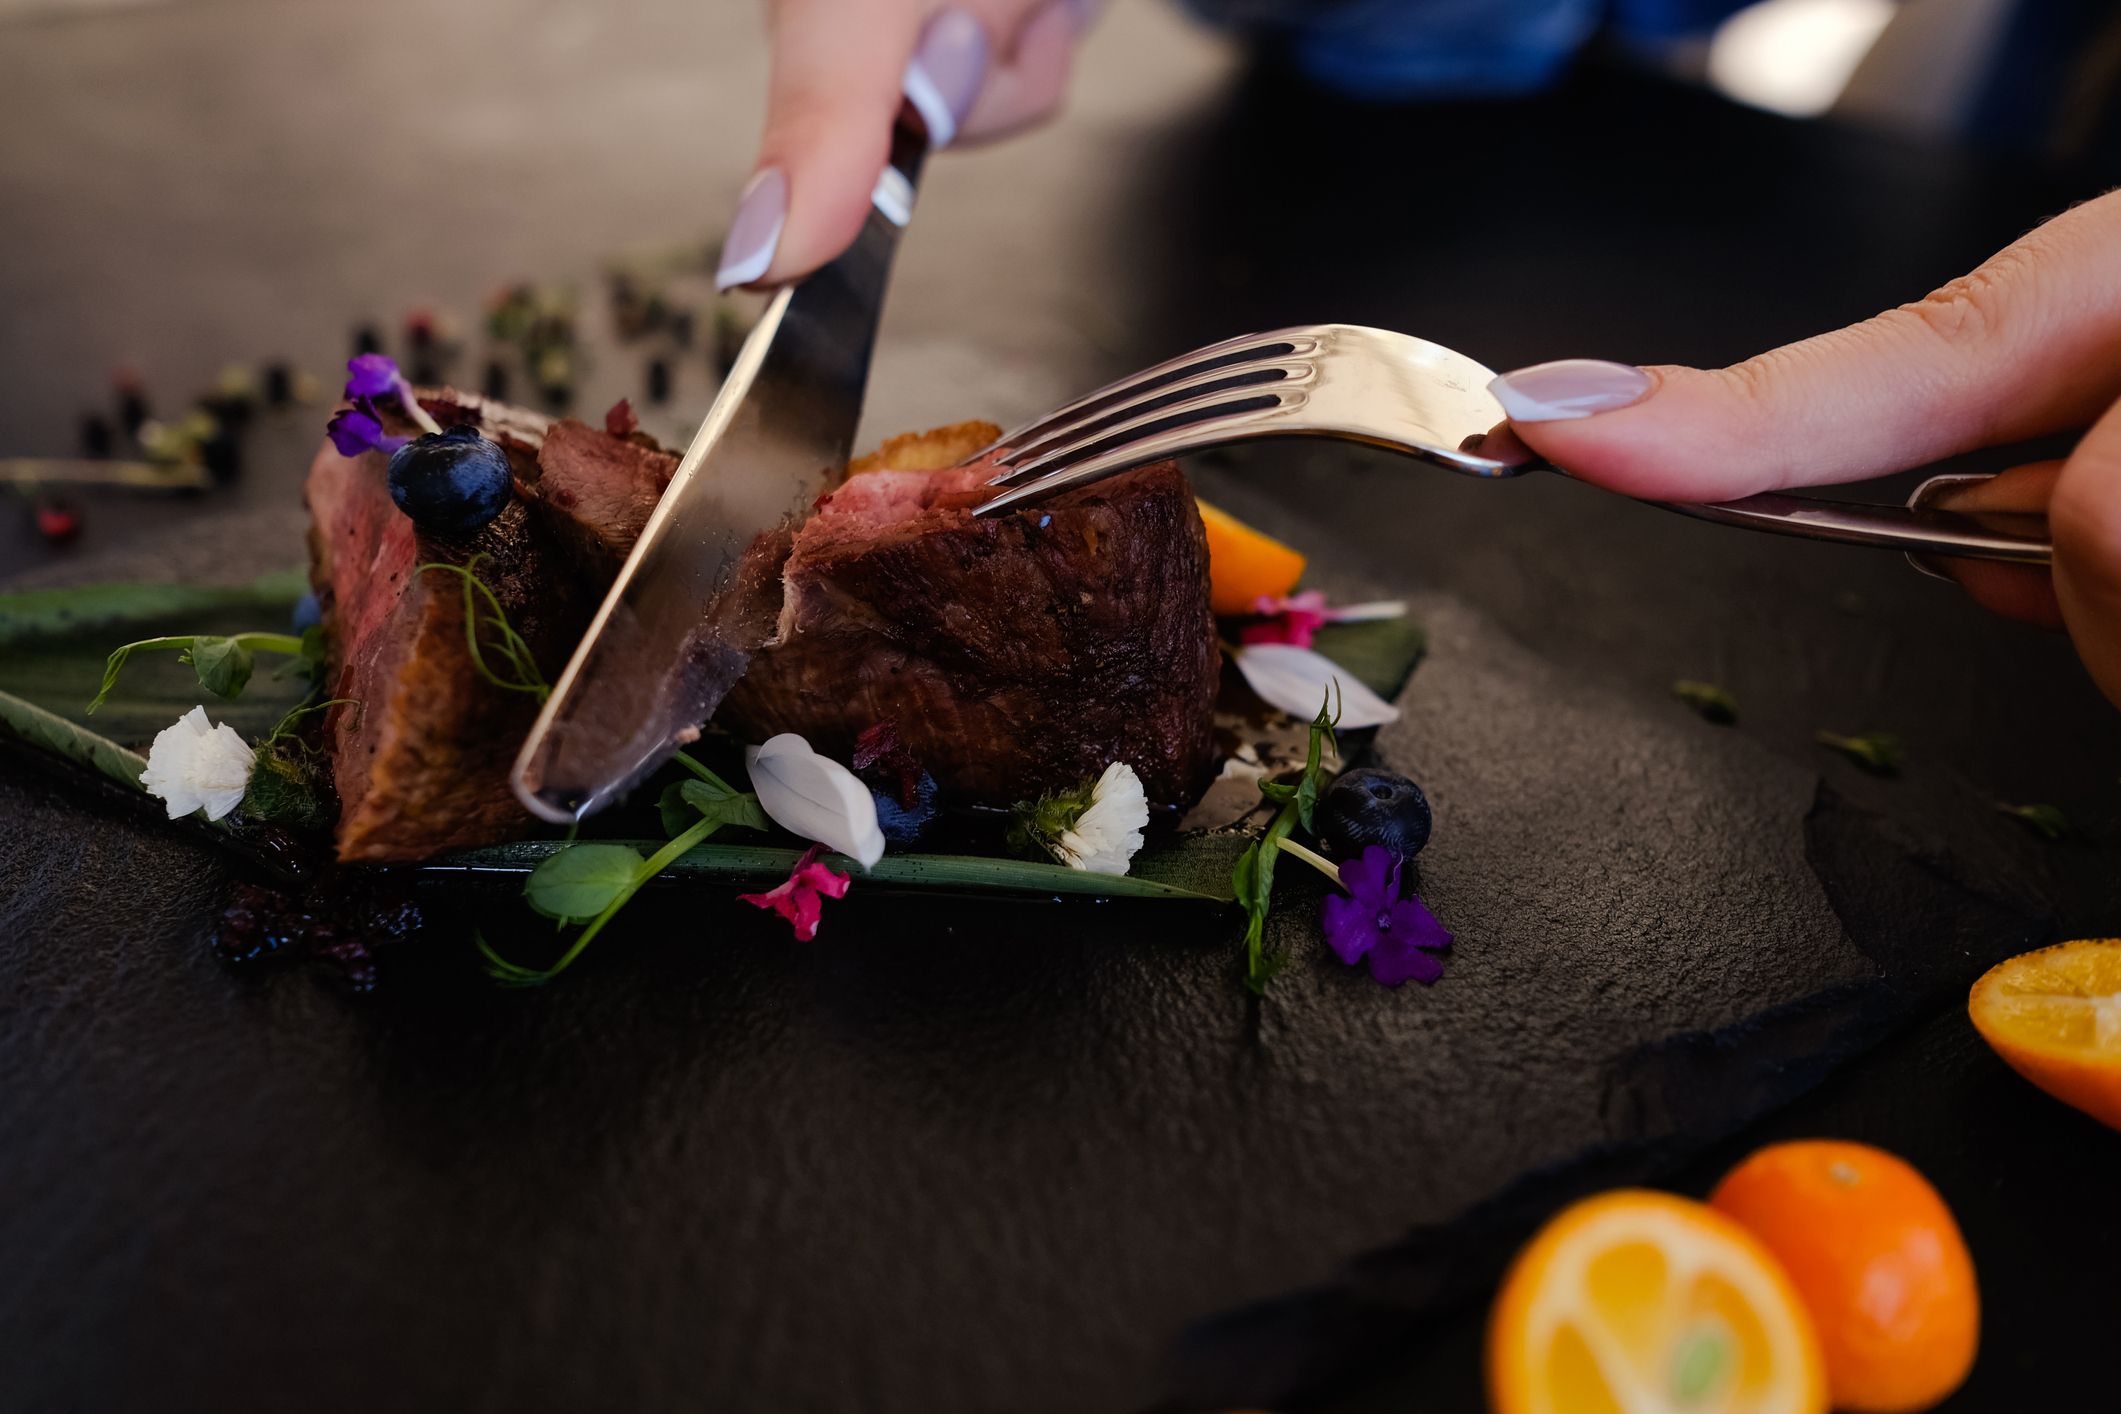 Dining Trends For Fall 2020: The Post-COVIDalyptic Era